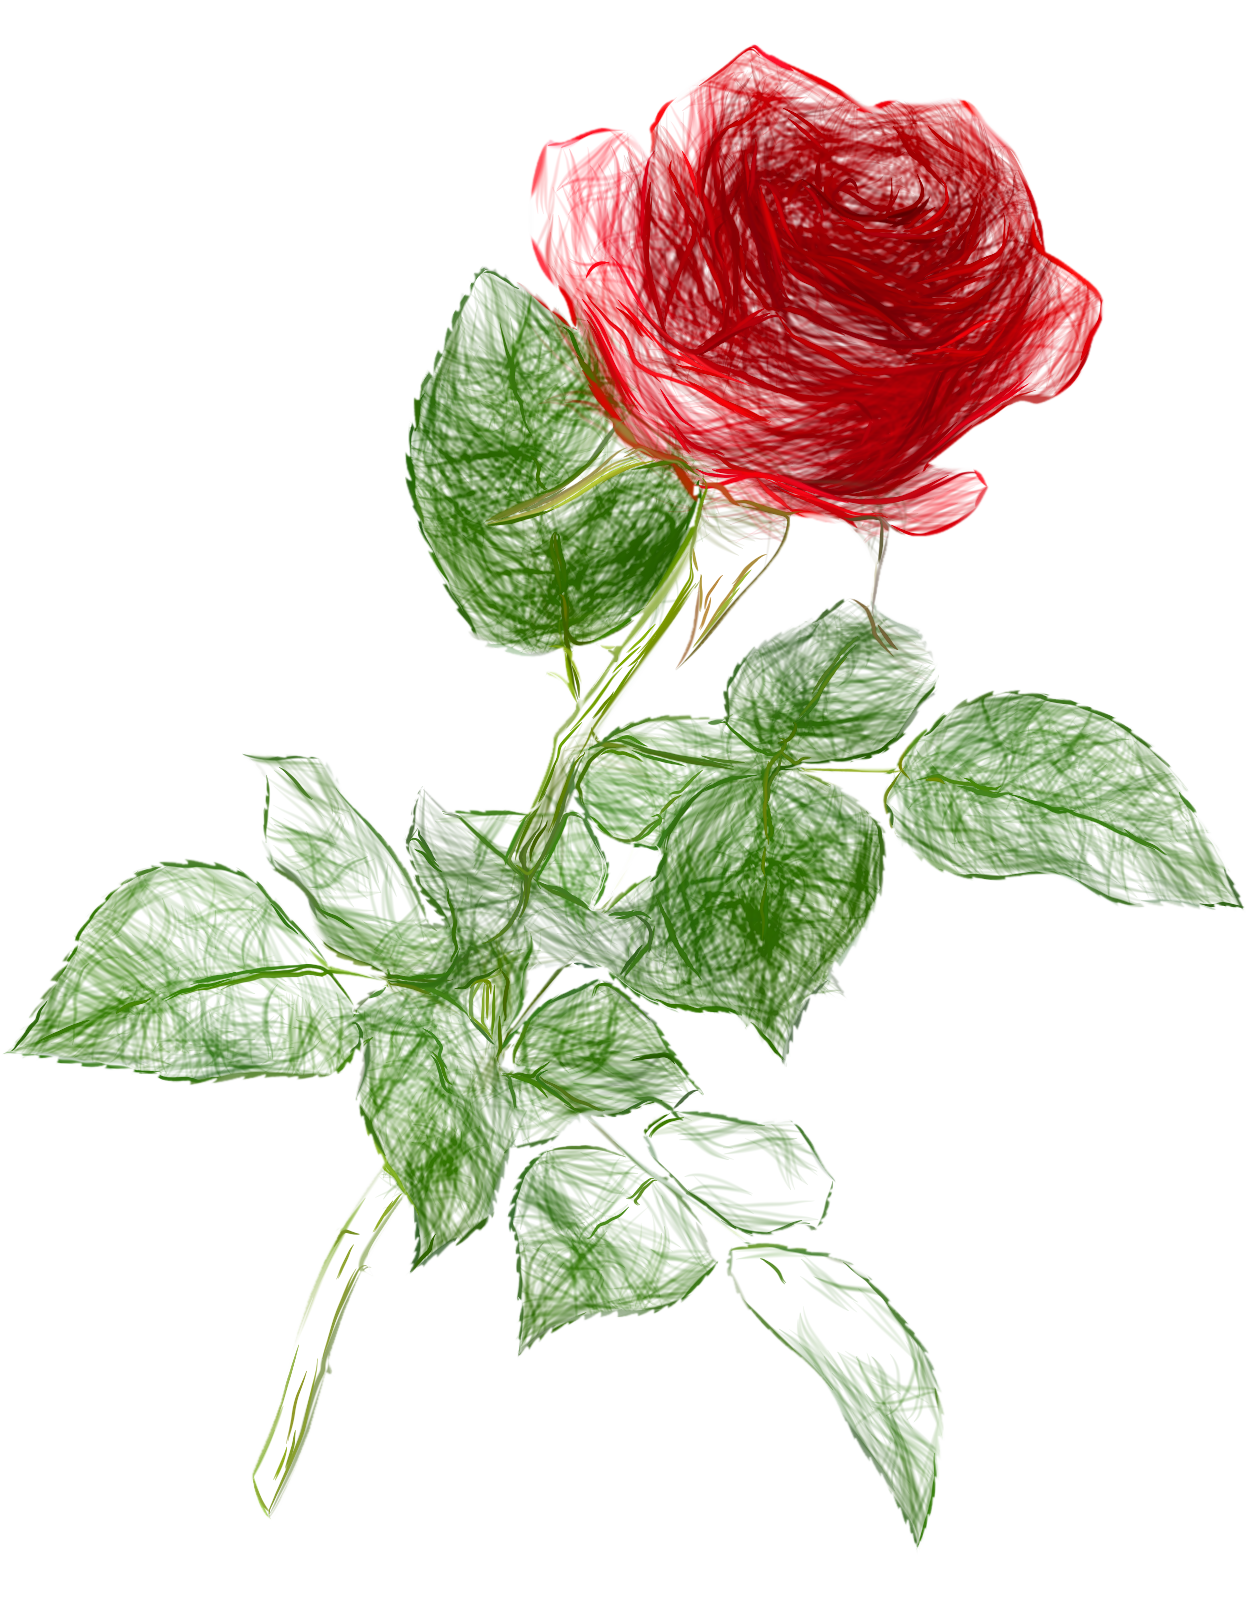 Clipart roses drawn, Clipart roses drawn Transparent FREE ...